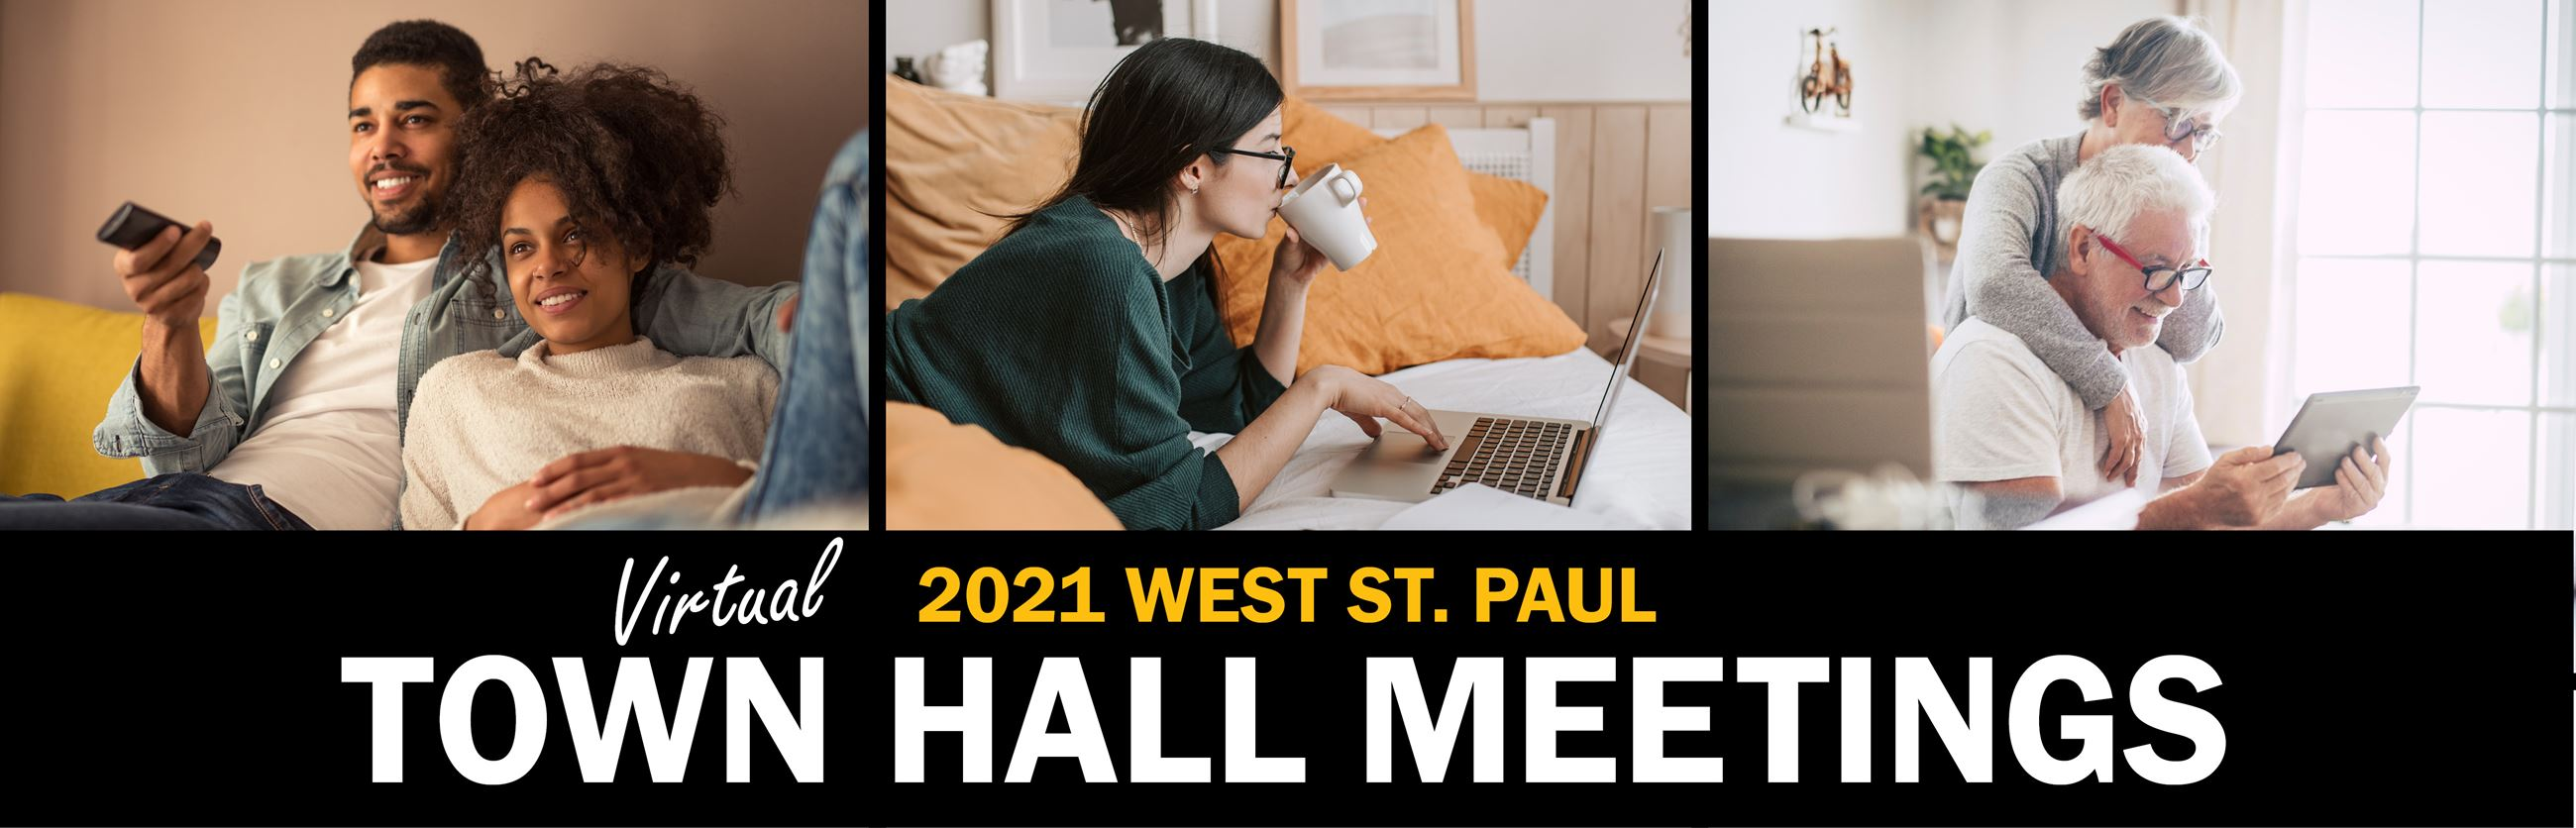 2021 Town Hall Meetings  Webpage Banner